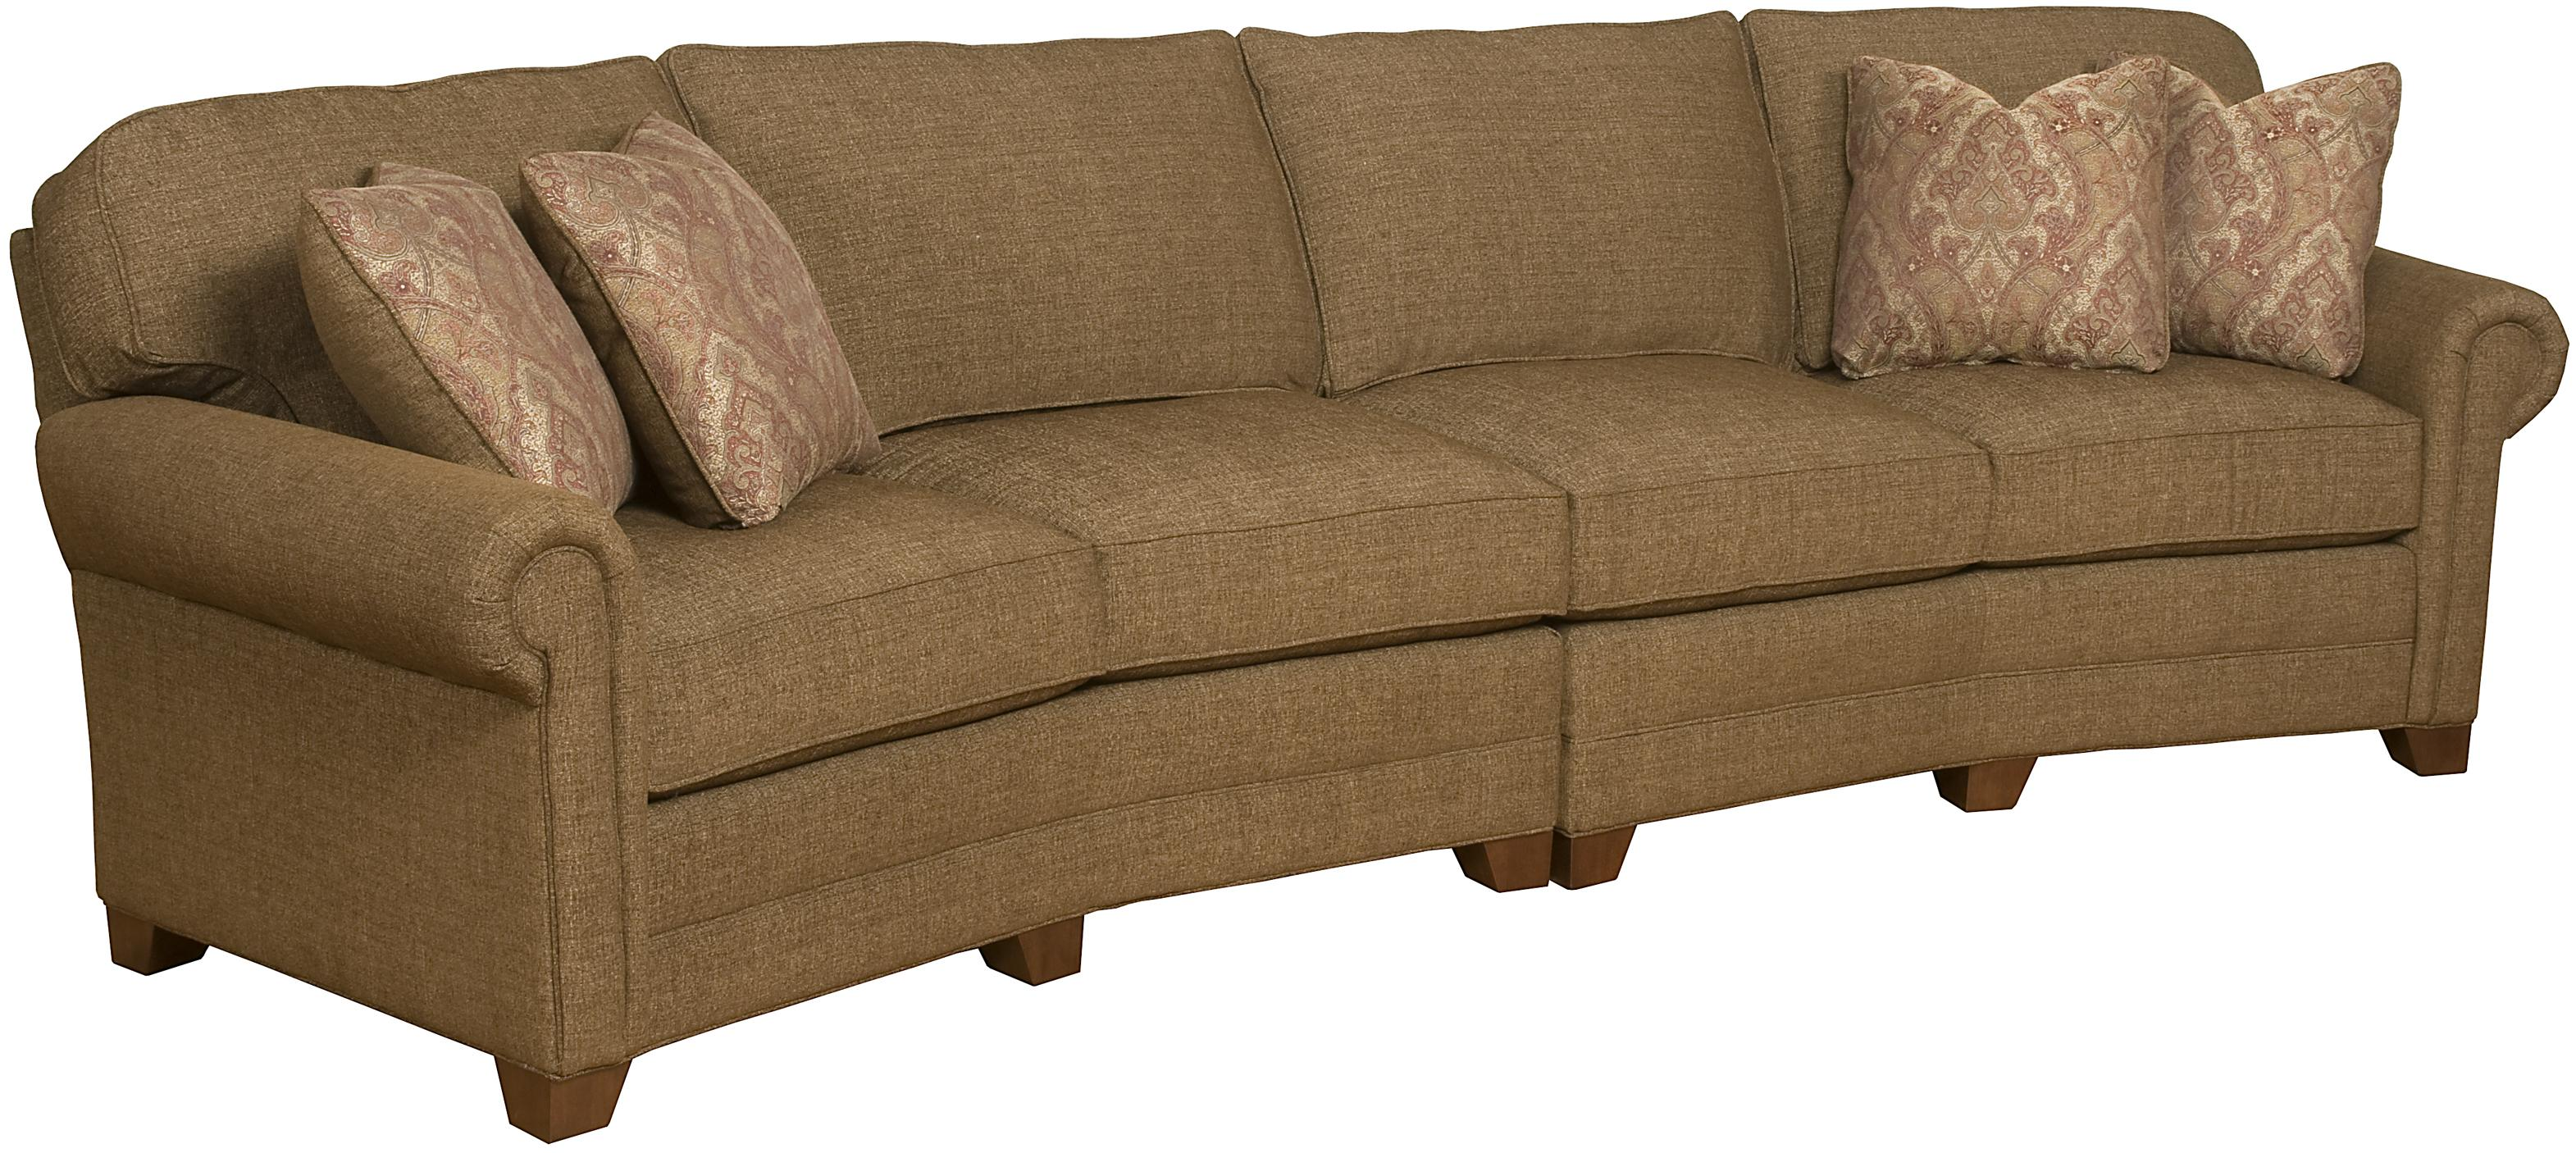 King Hickory Brighton 2 Piece Conversation Sofa with Exposed Wood ...